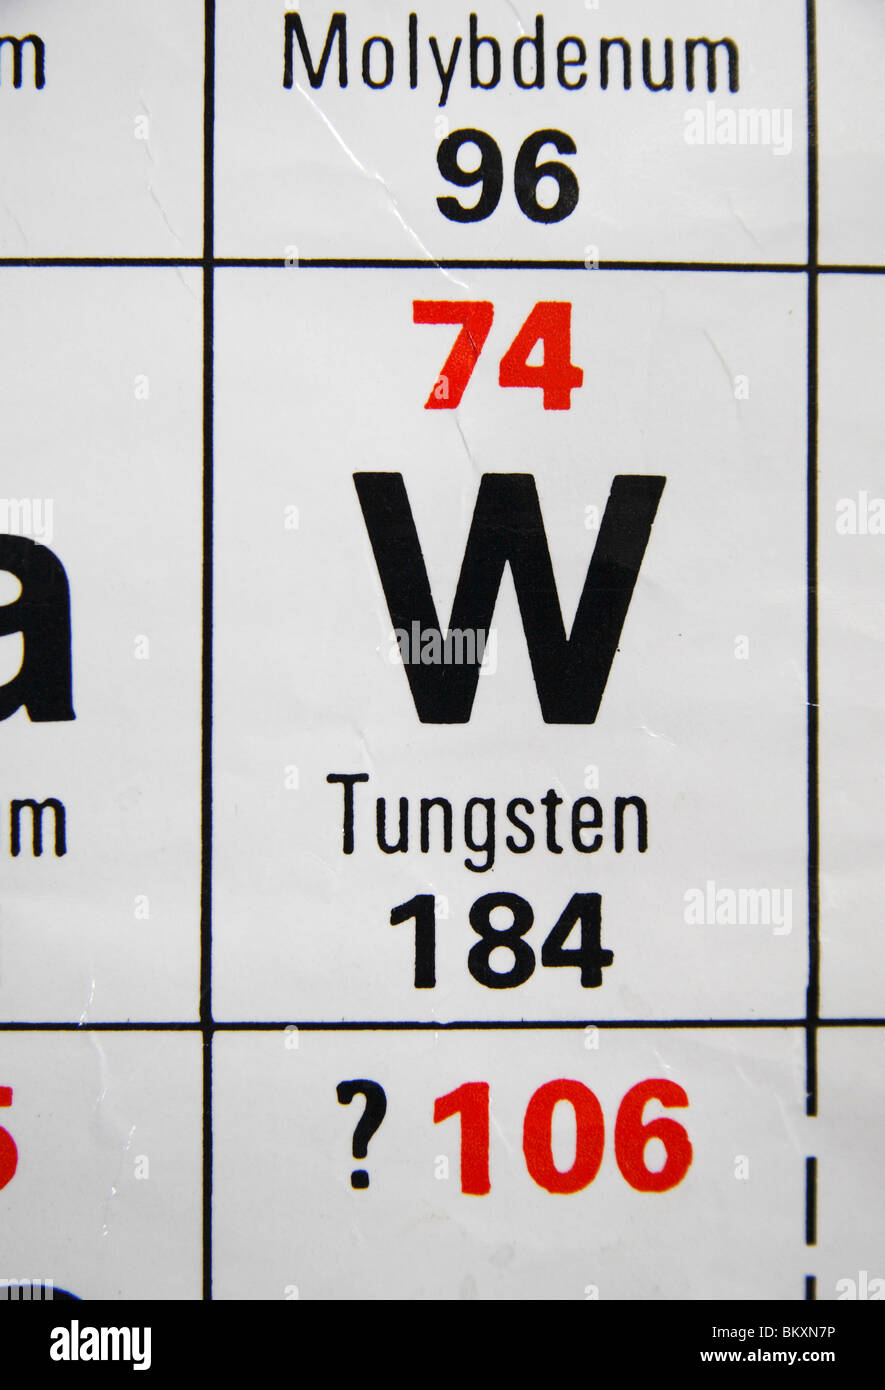 Atomic weight stock photos atomic weight stock images alamy close up view of a standard uk high school periodic table focusing on the metal tungsten urtaz Choice Image